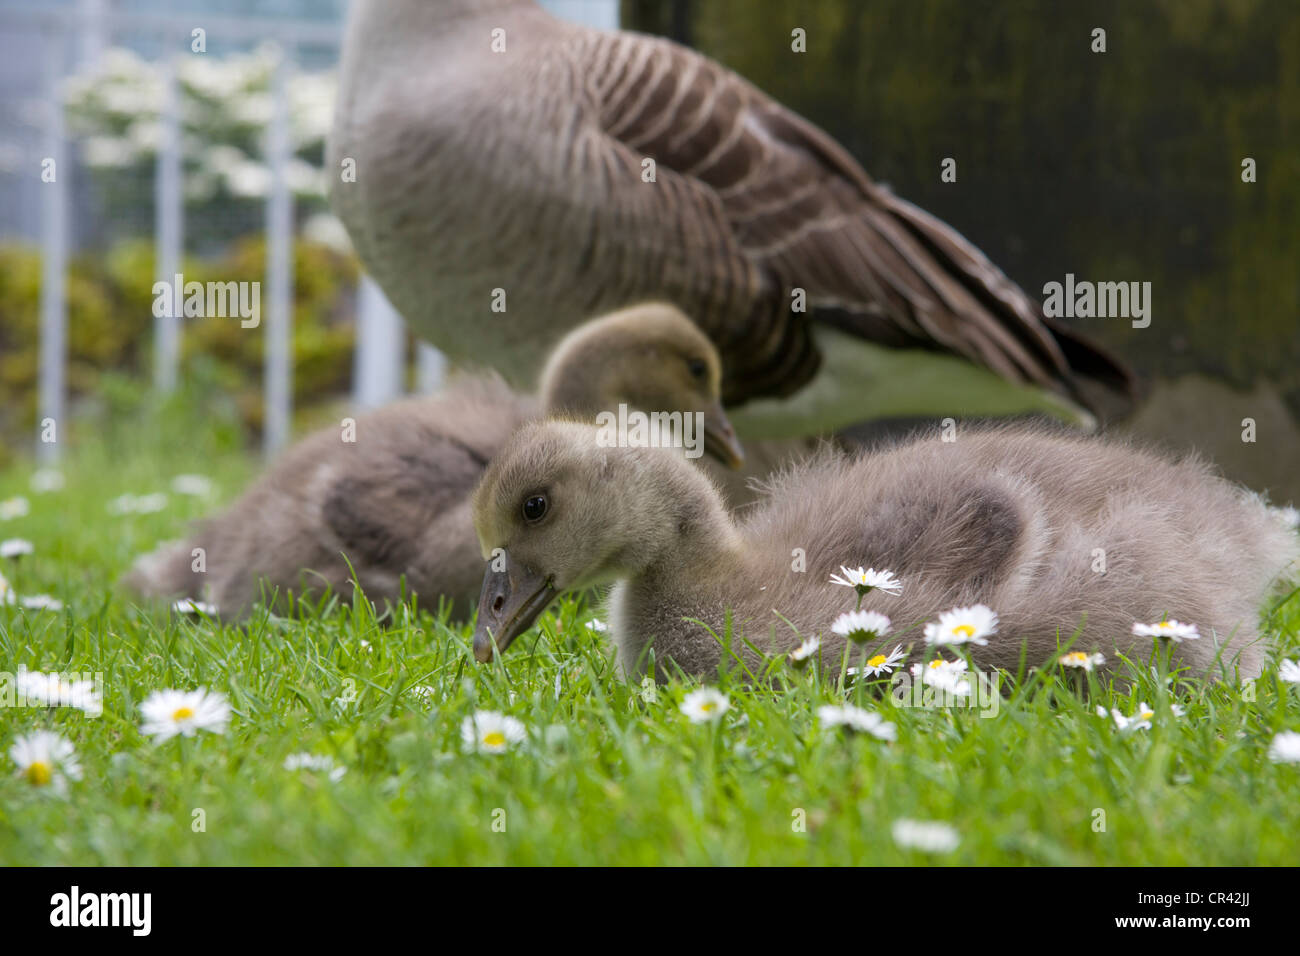 Goslings eating grass while watched over by parents Stock Photo